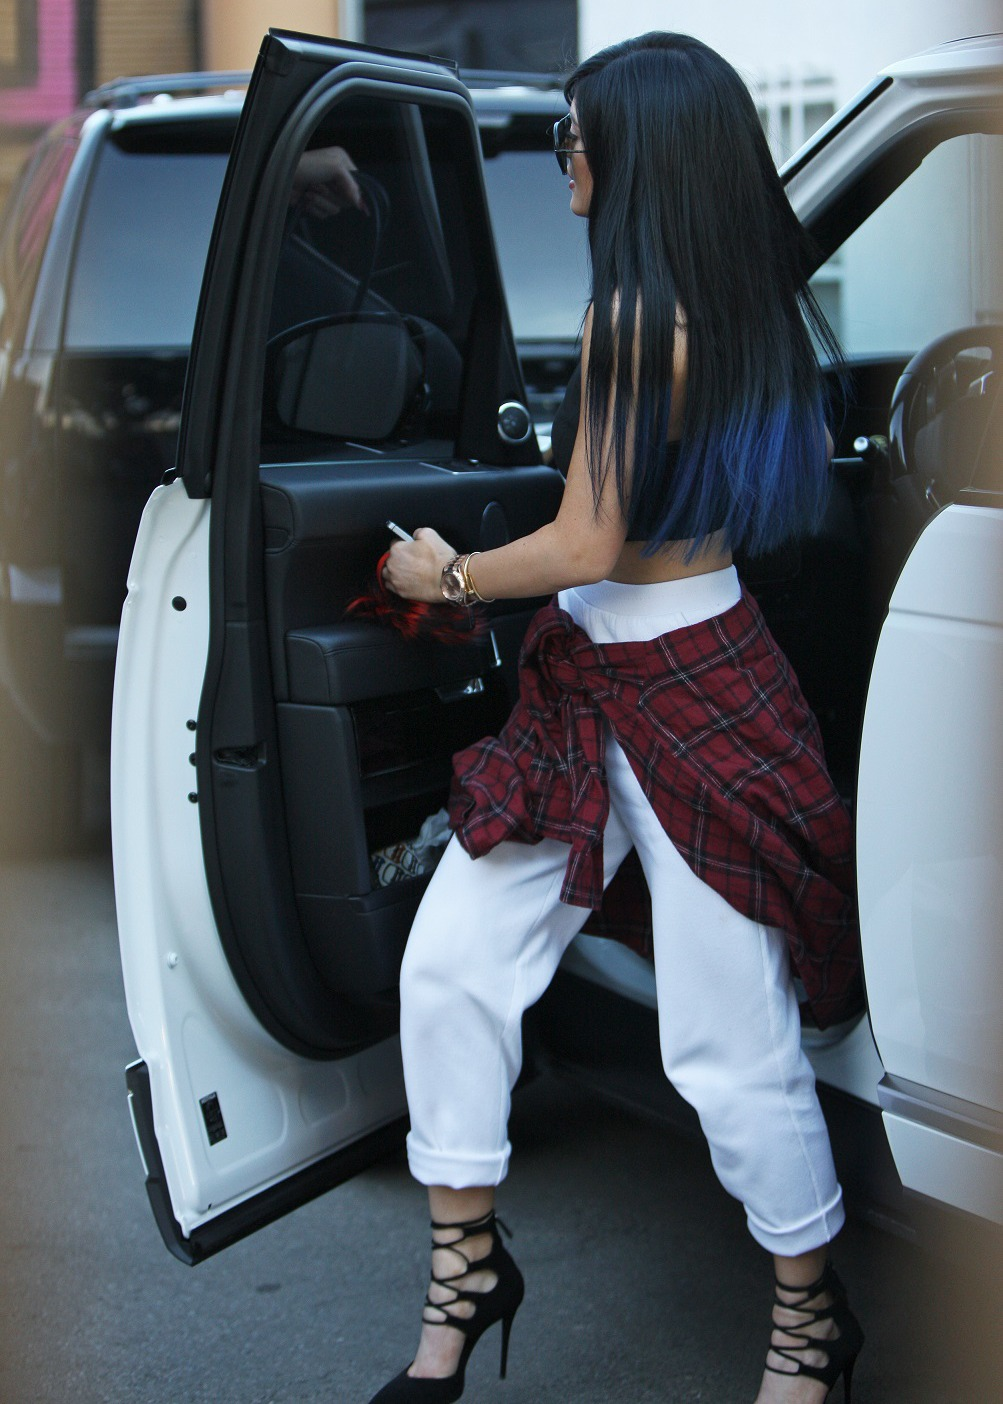 Kylie Jenner Lace Up Heels Plaid Shirt White Pants Black Crop Top